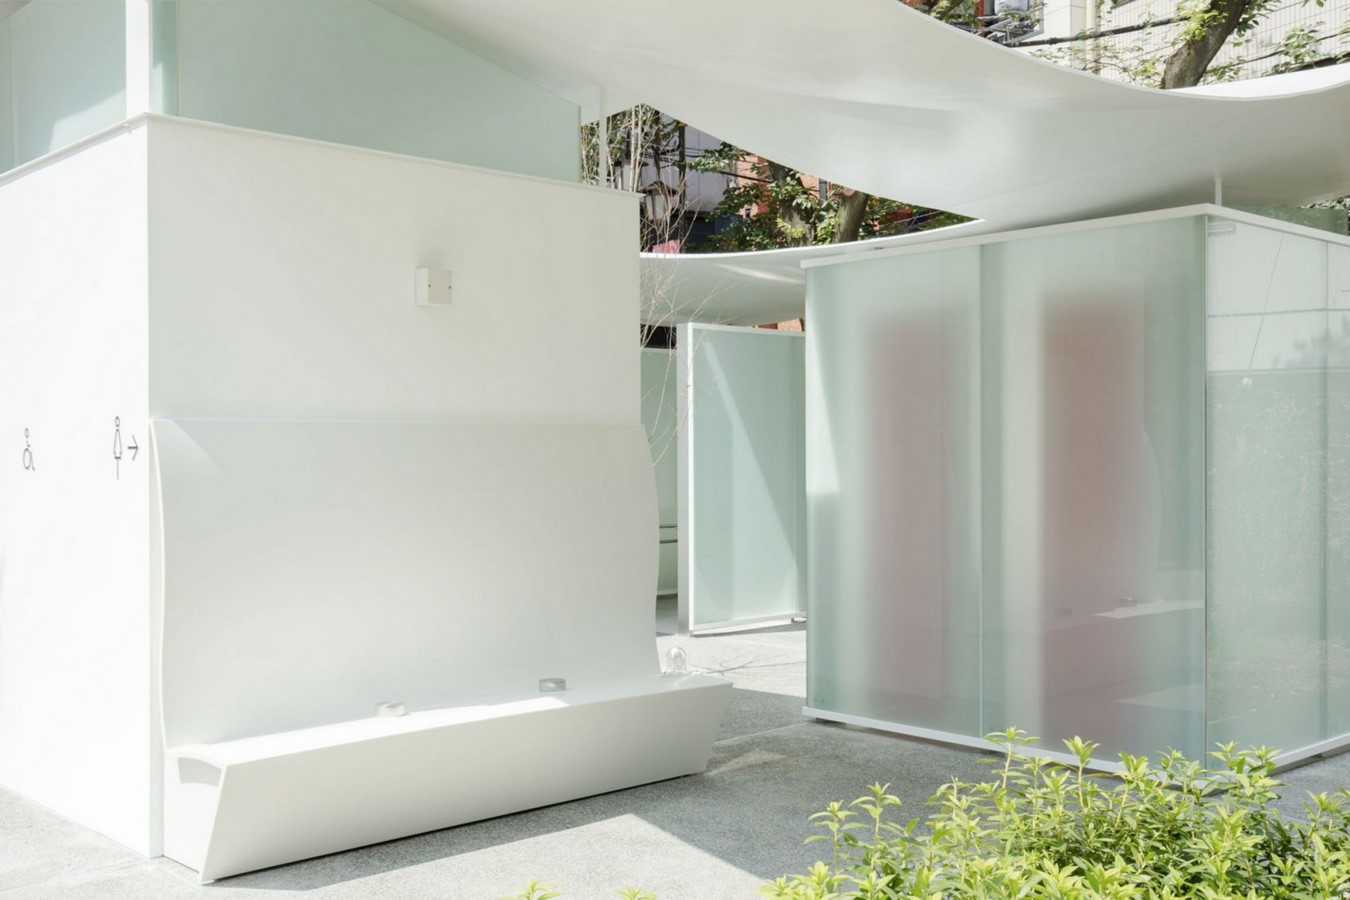 Fumikhiko Maki designs Toilet with the curved roof  'Squid Toilet' - Sheet5